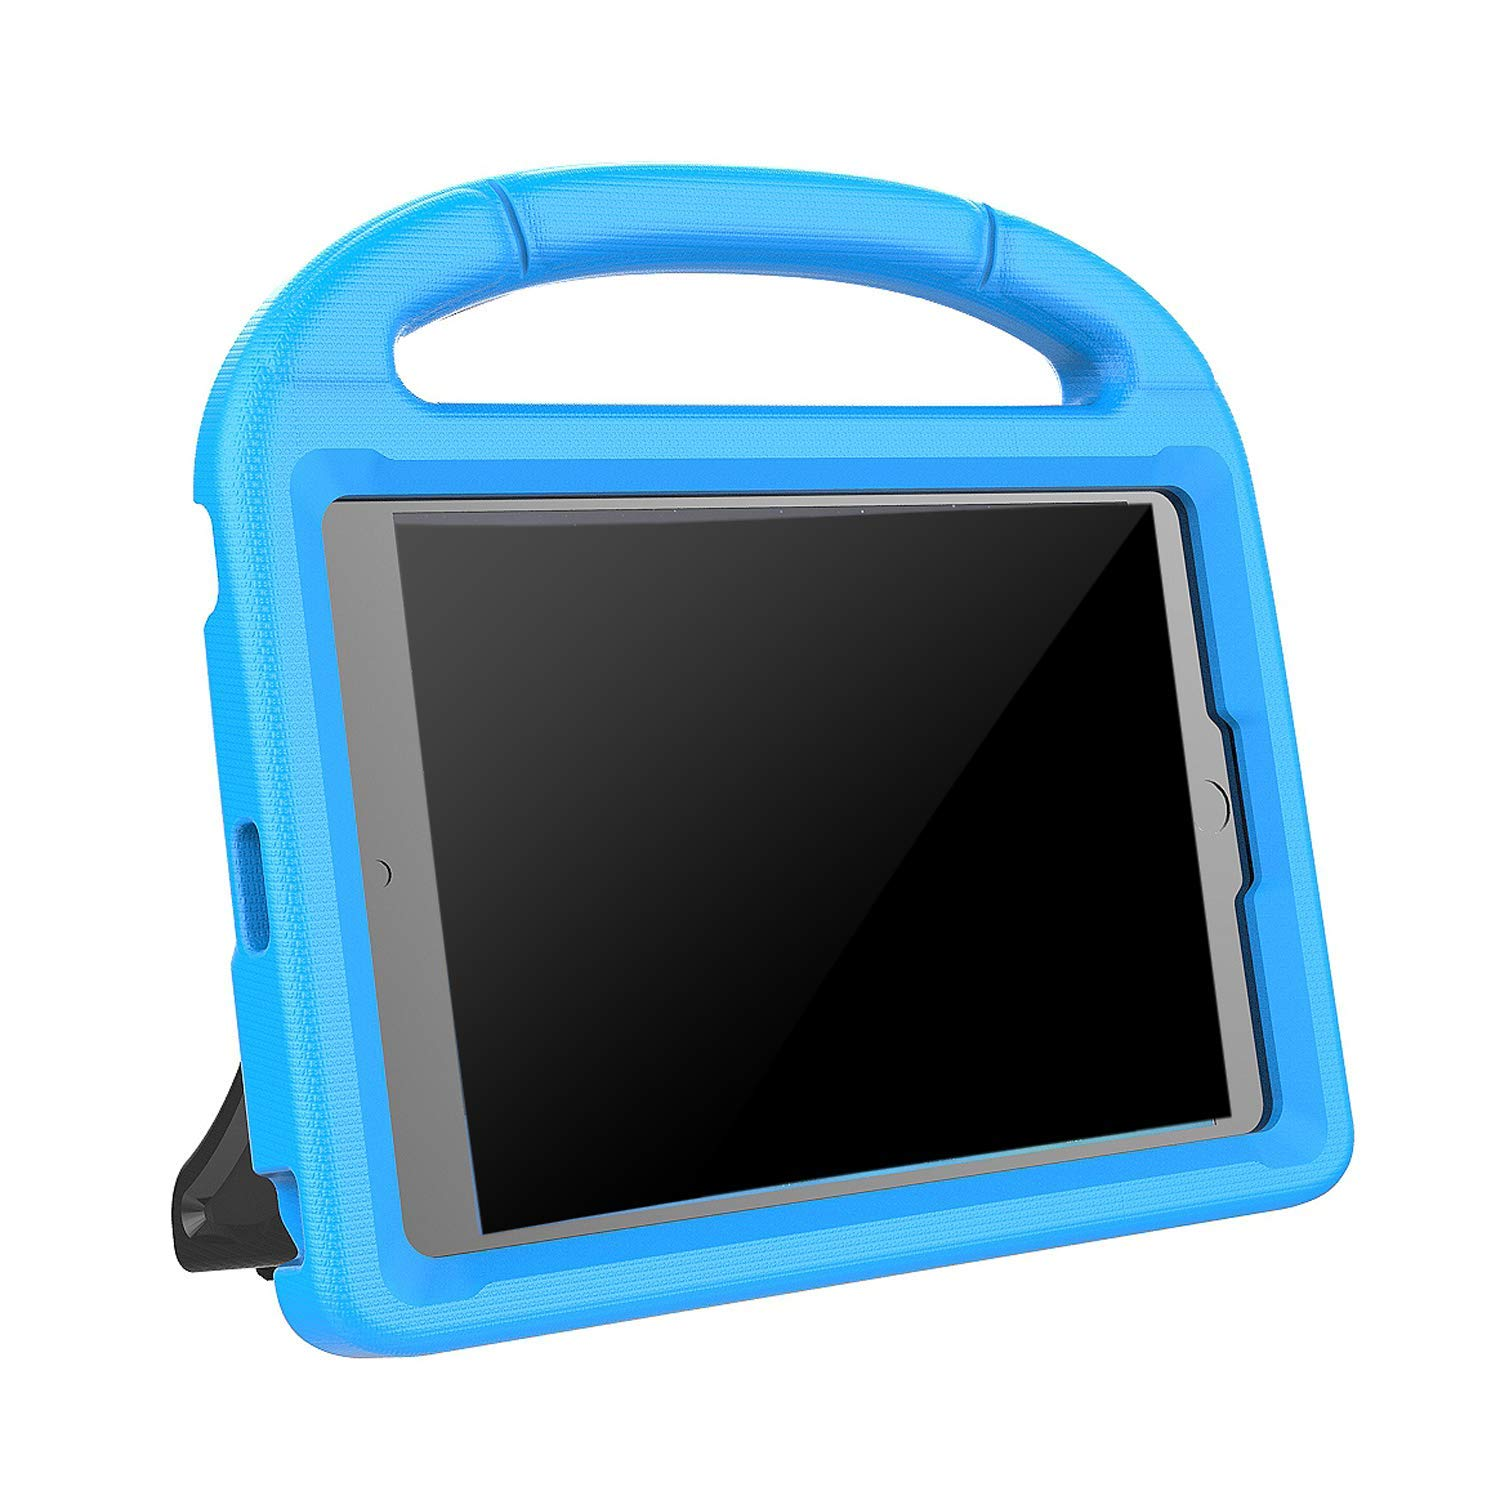 LEDNICEKER Kids Case for iPad Mini 1 2 3 4 5 - Light Weight Shock Proof Handle Friendly Convertible Stand Kids Case for iPad Mini, Mini 5, Mini 4,iPad Mini 3rd Generation, Mini 2 Tablet - Blue